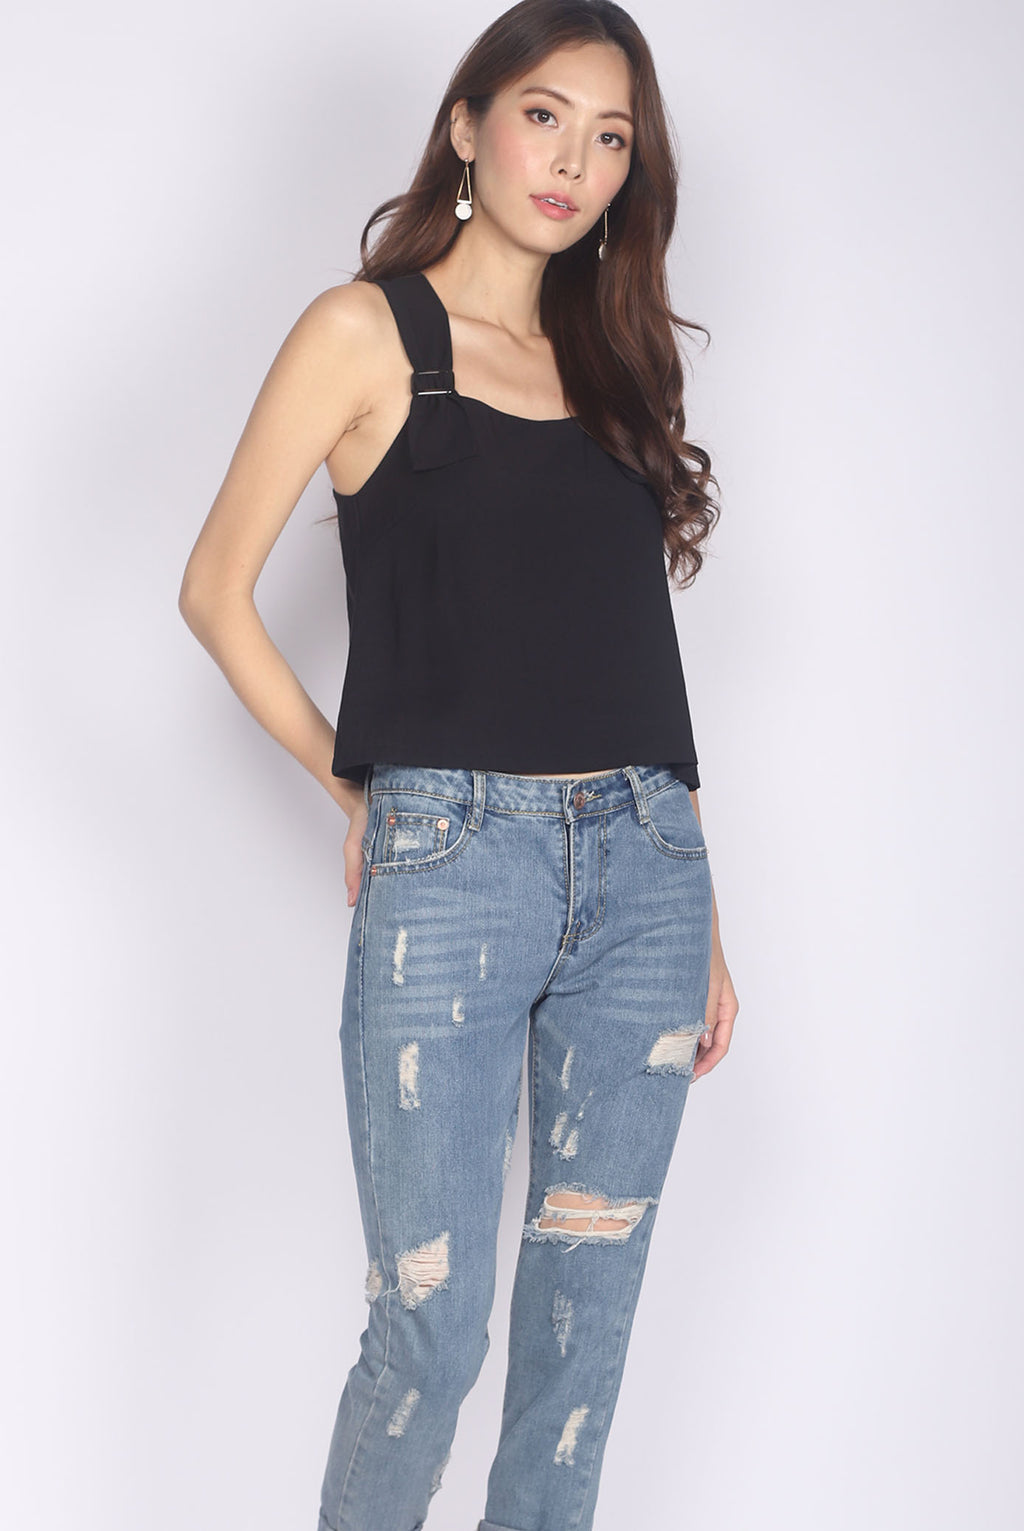 Benicia Buckle Strap Top In Black